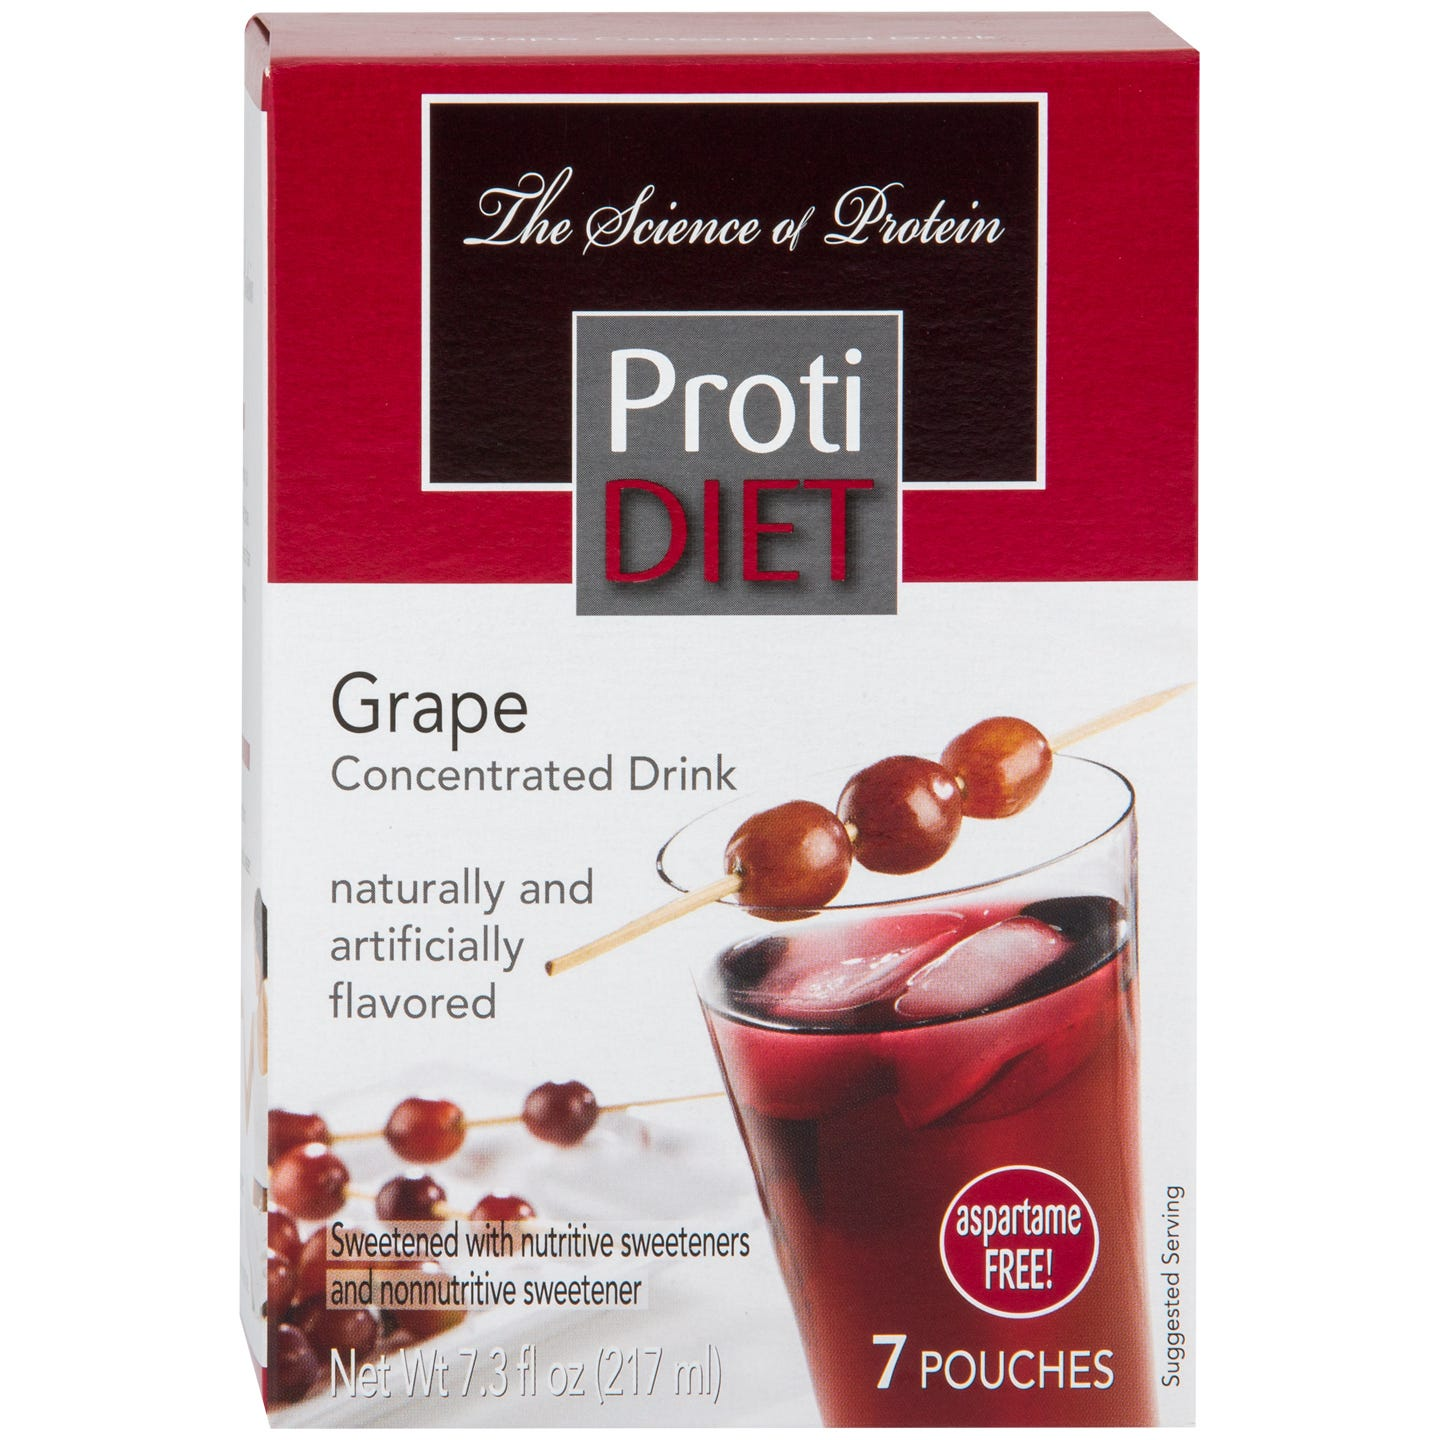 Protein Fruit Drink Concentrate Grape (7 ct) – ProtiDiet